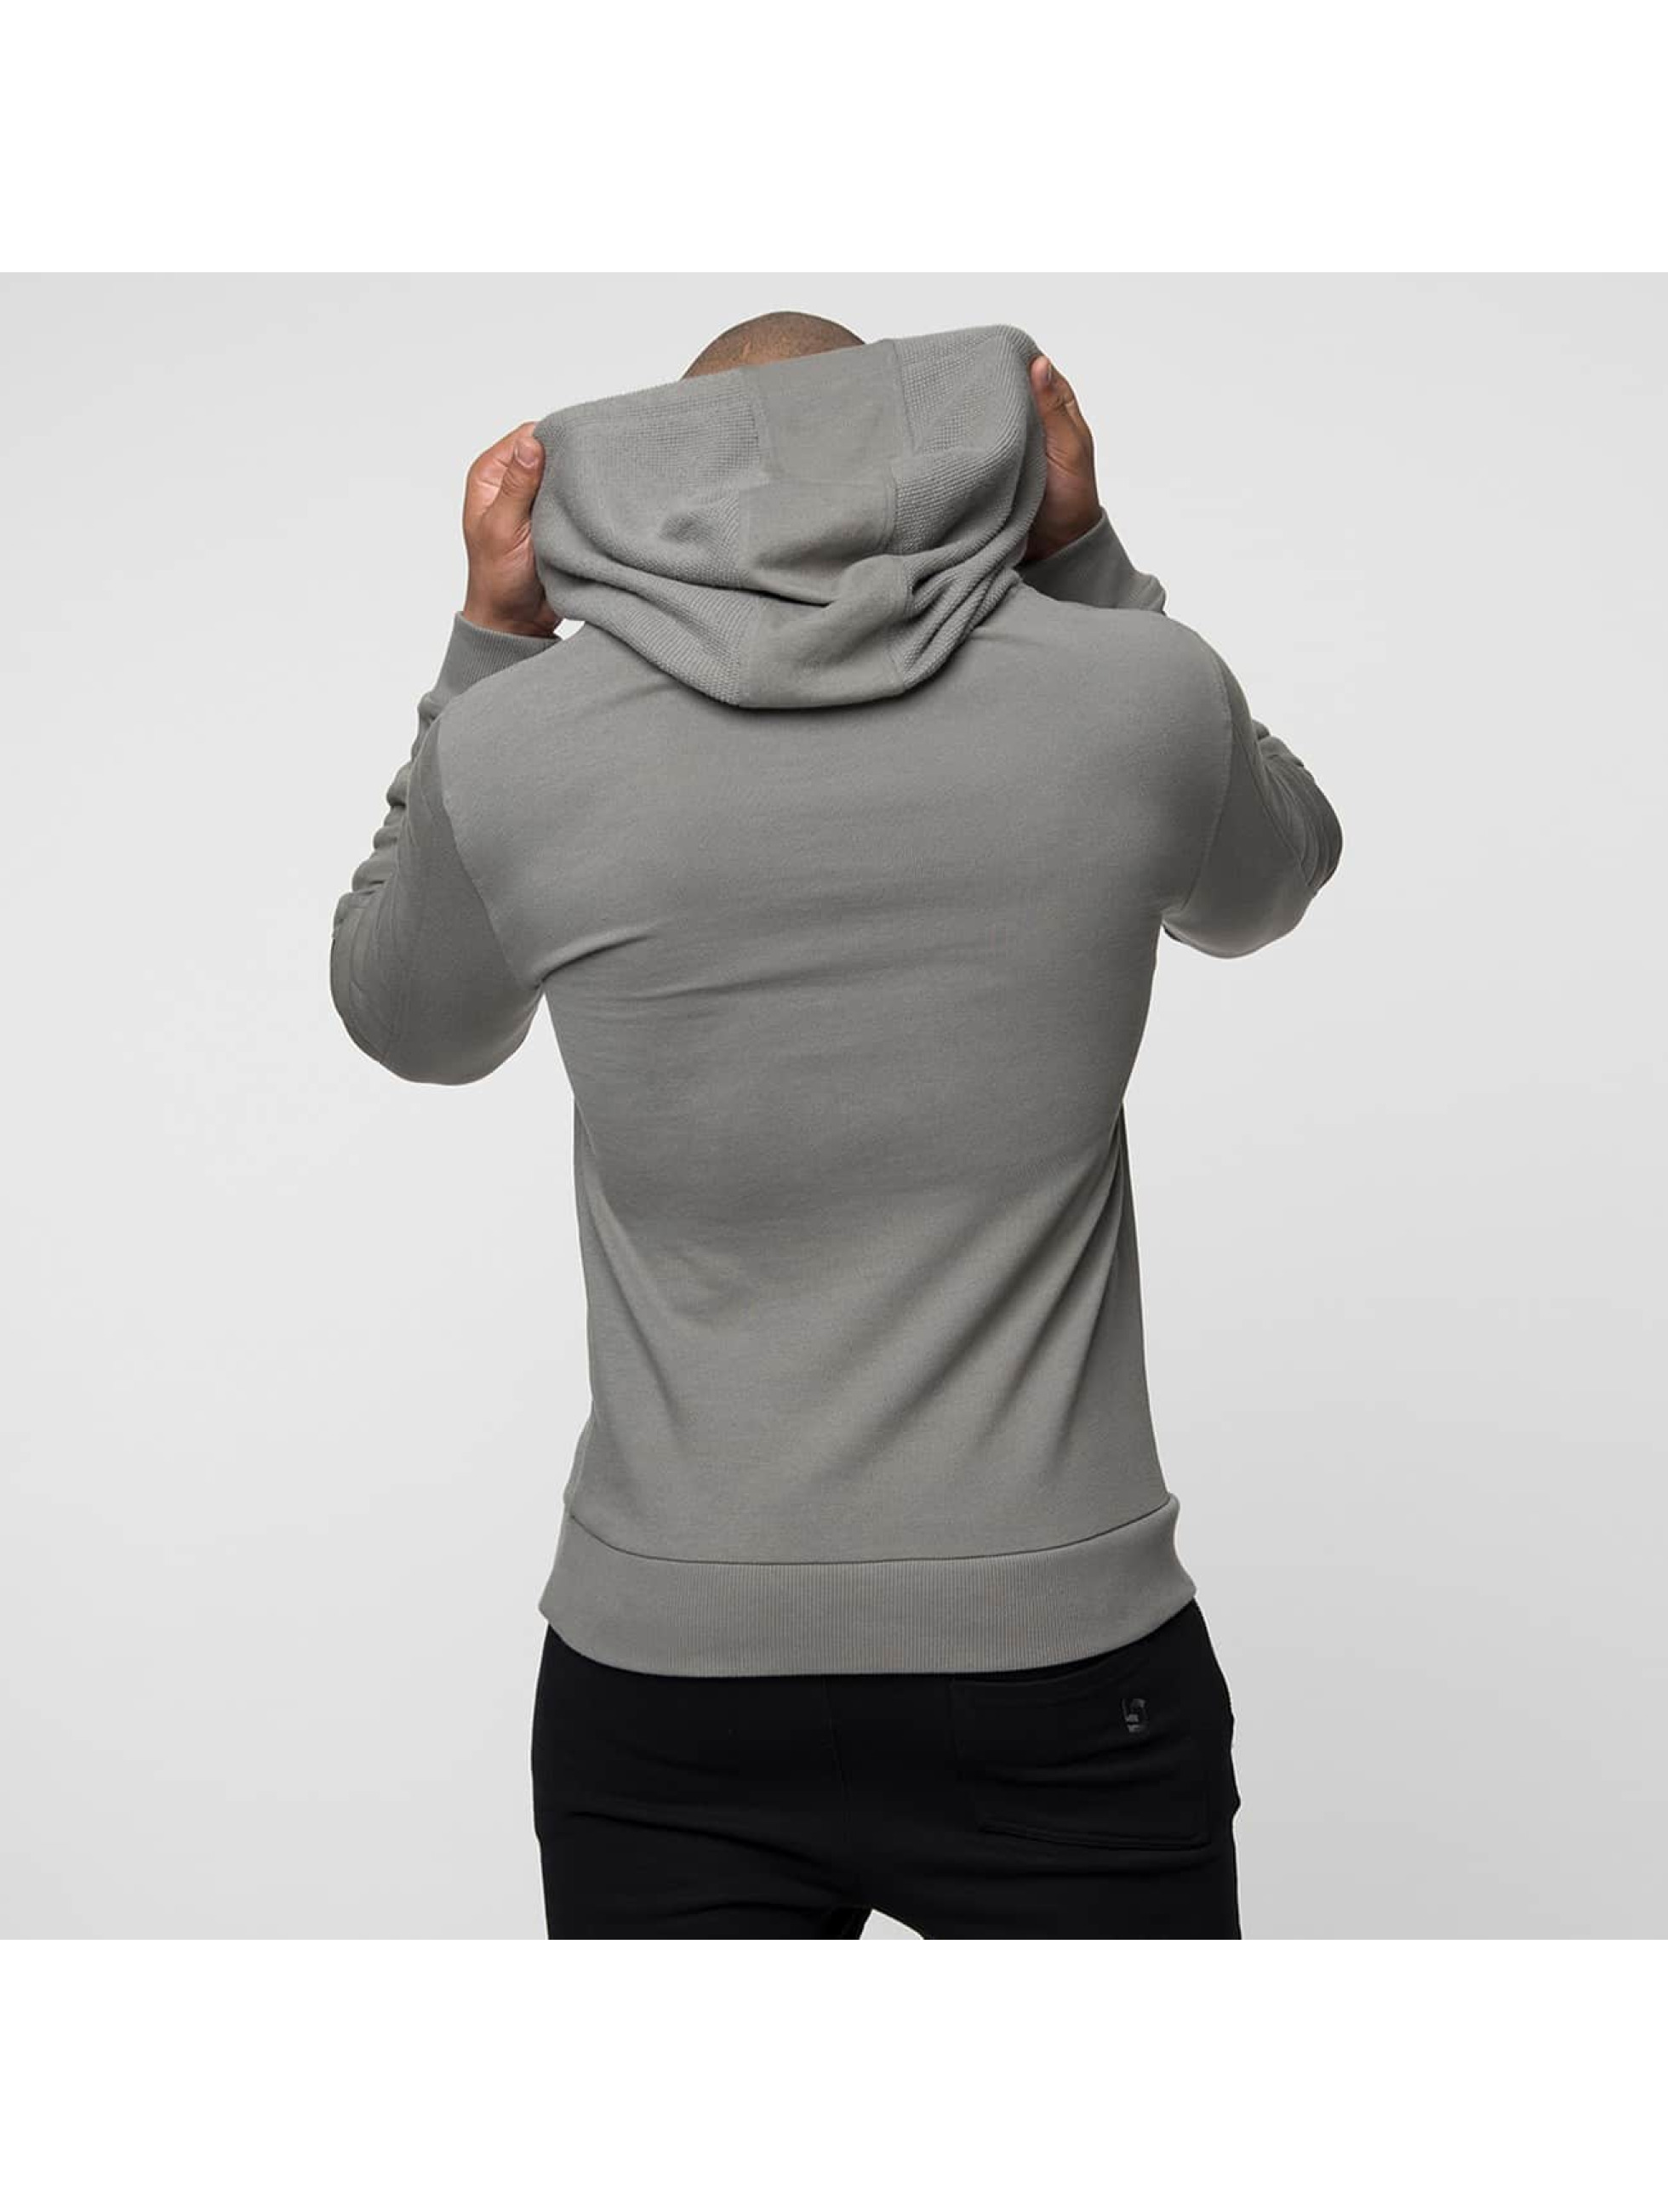 Beyond Limits Hoodies Crowned khaki